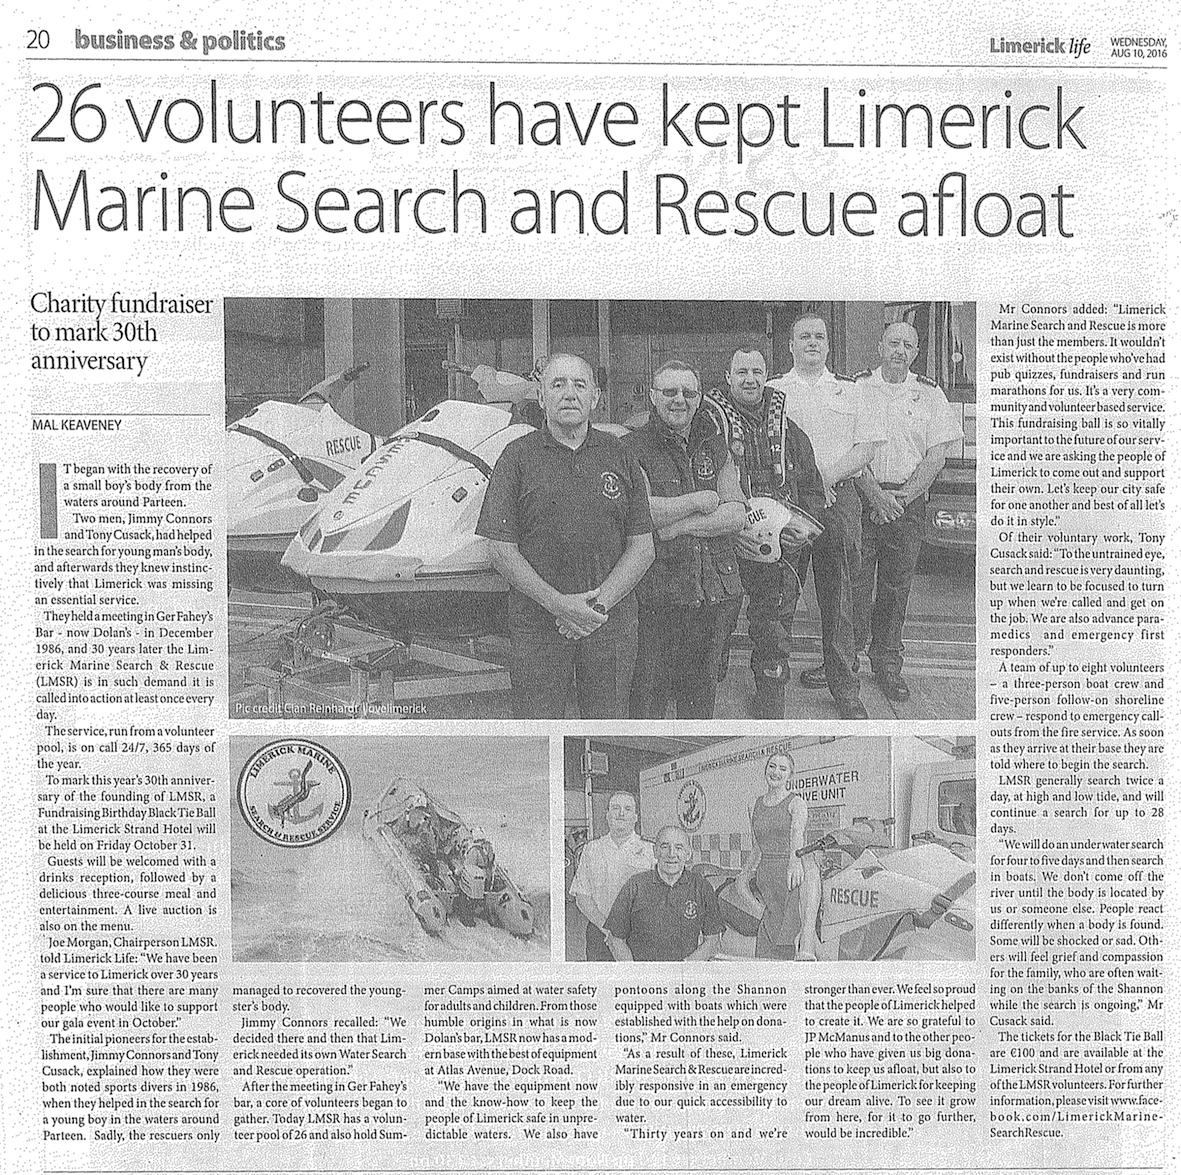 limerick-marine-search-rescue-limericks-life-august-10-2016.